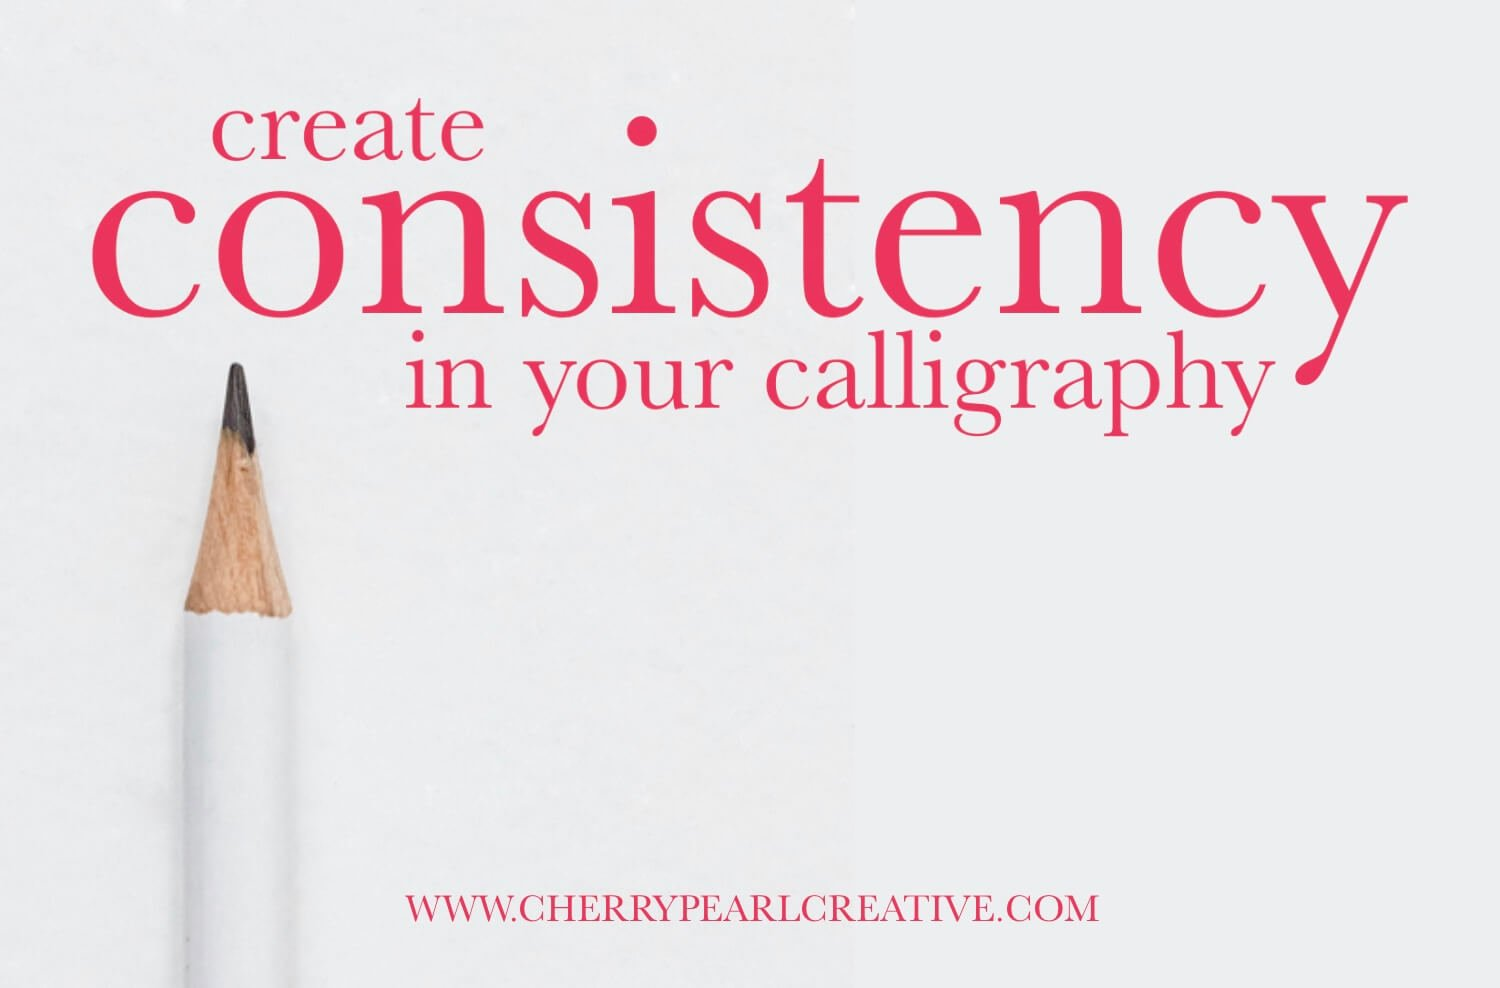 create consistency in your calligraphy